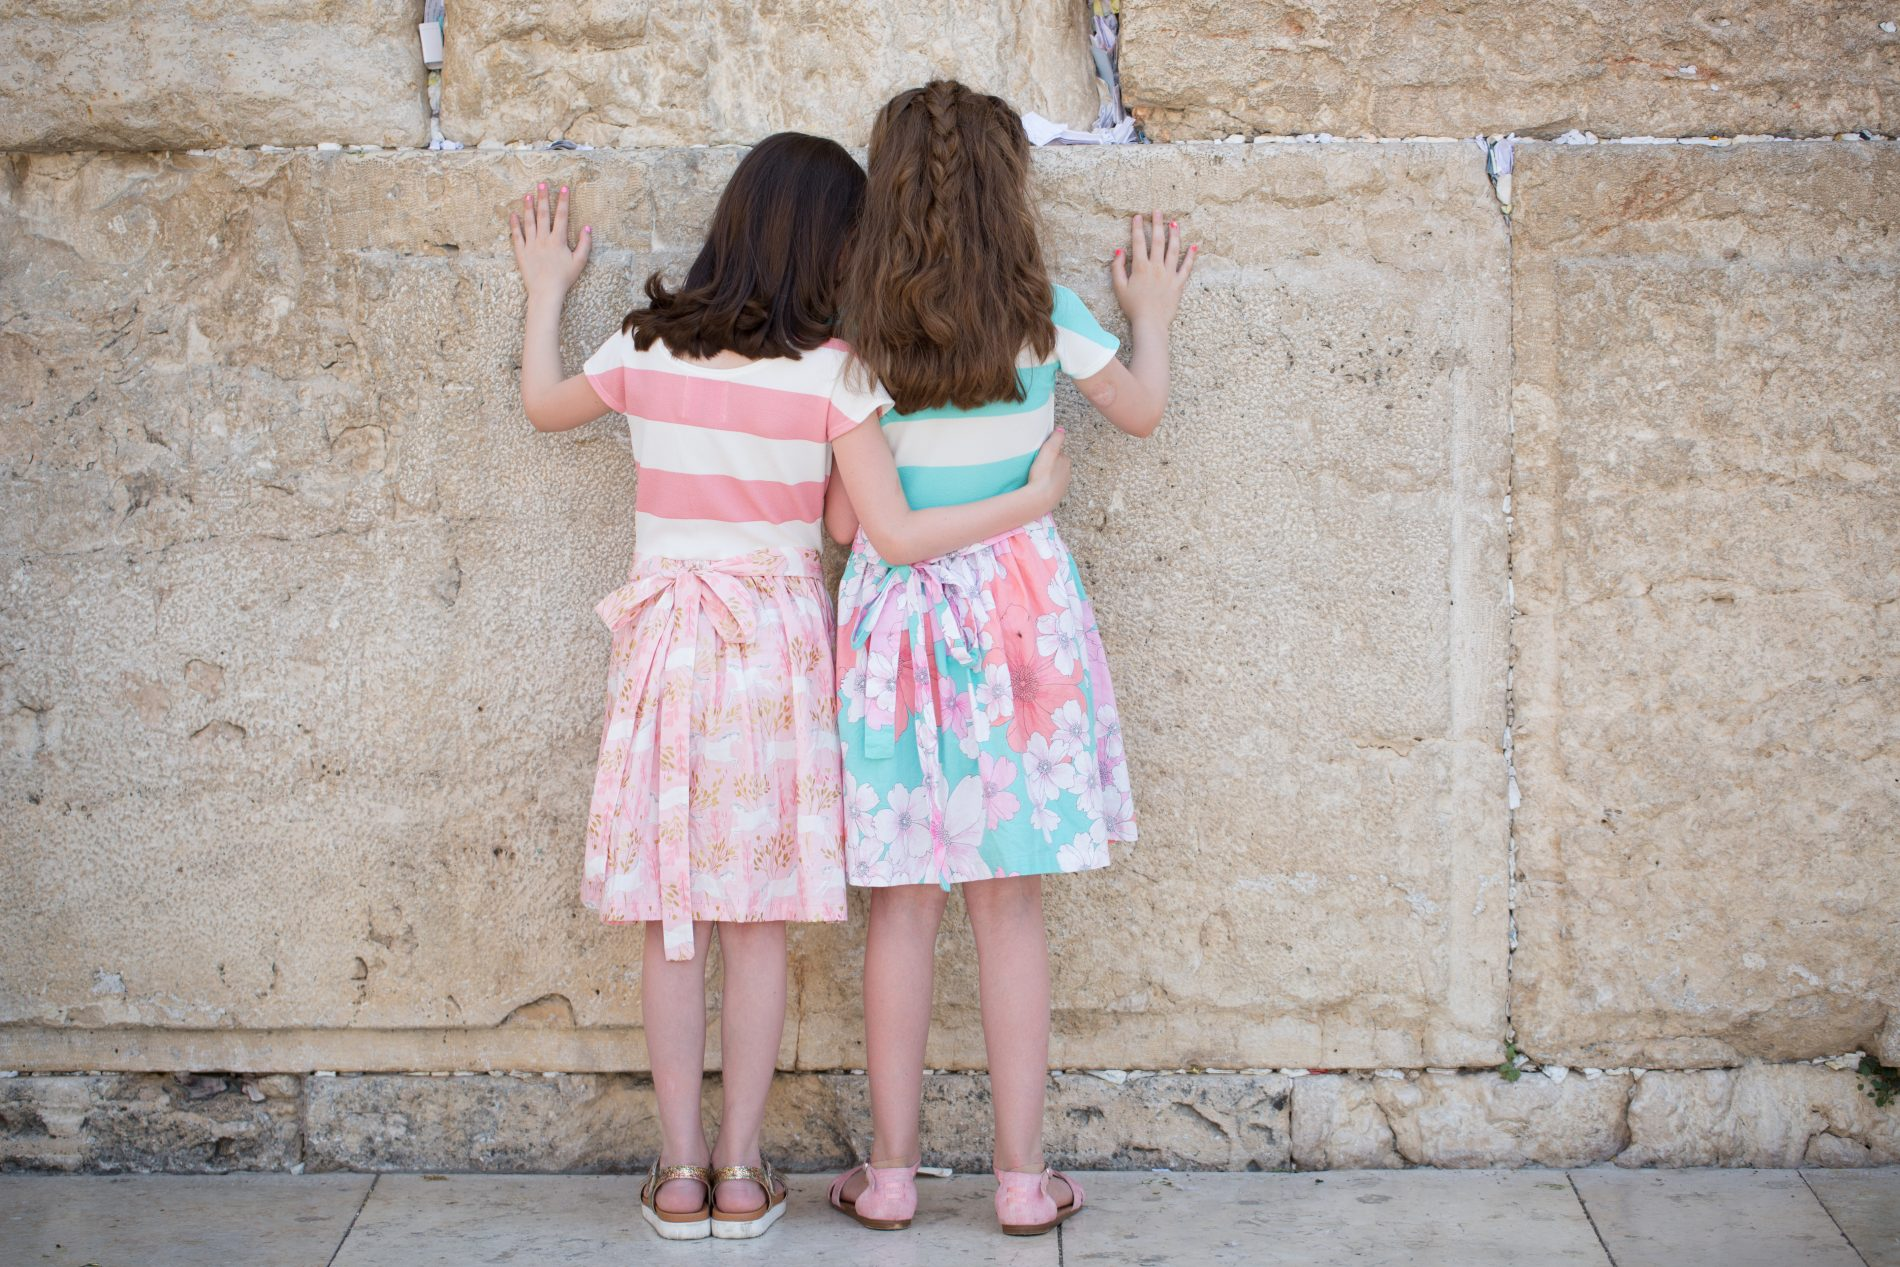 tour Jerusalem, tourist children praying at Kotel, Western Wall